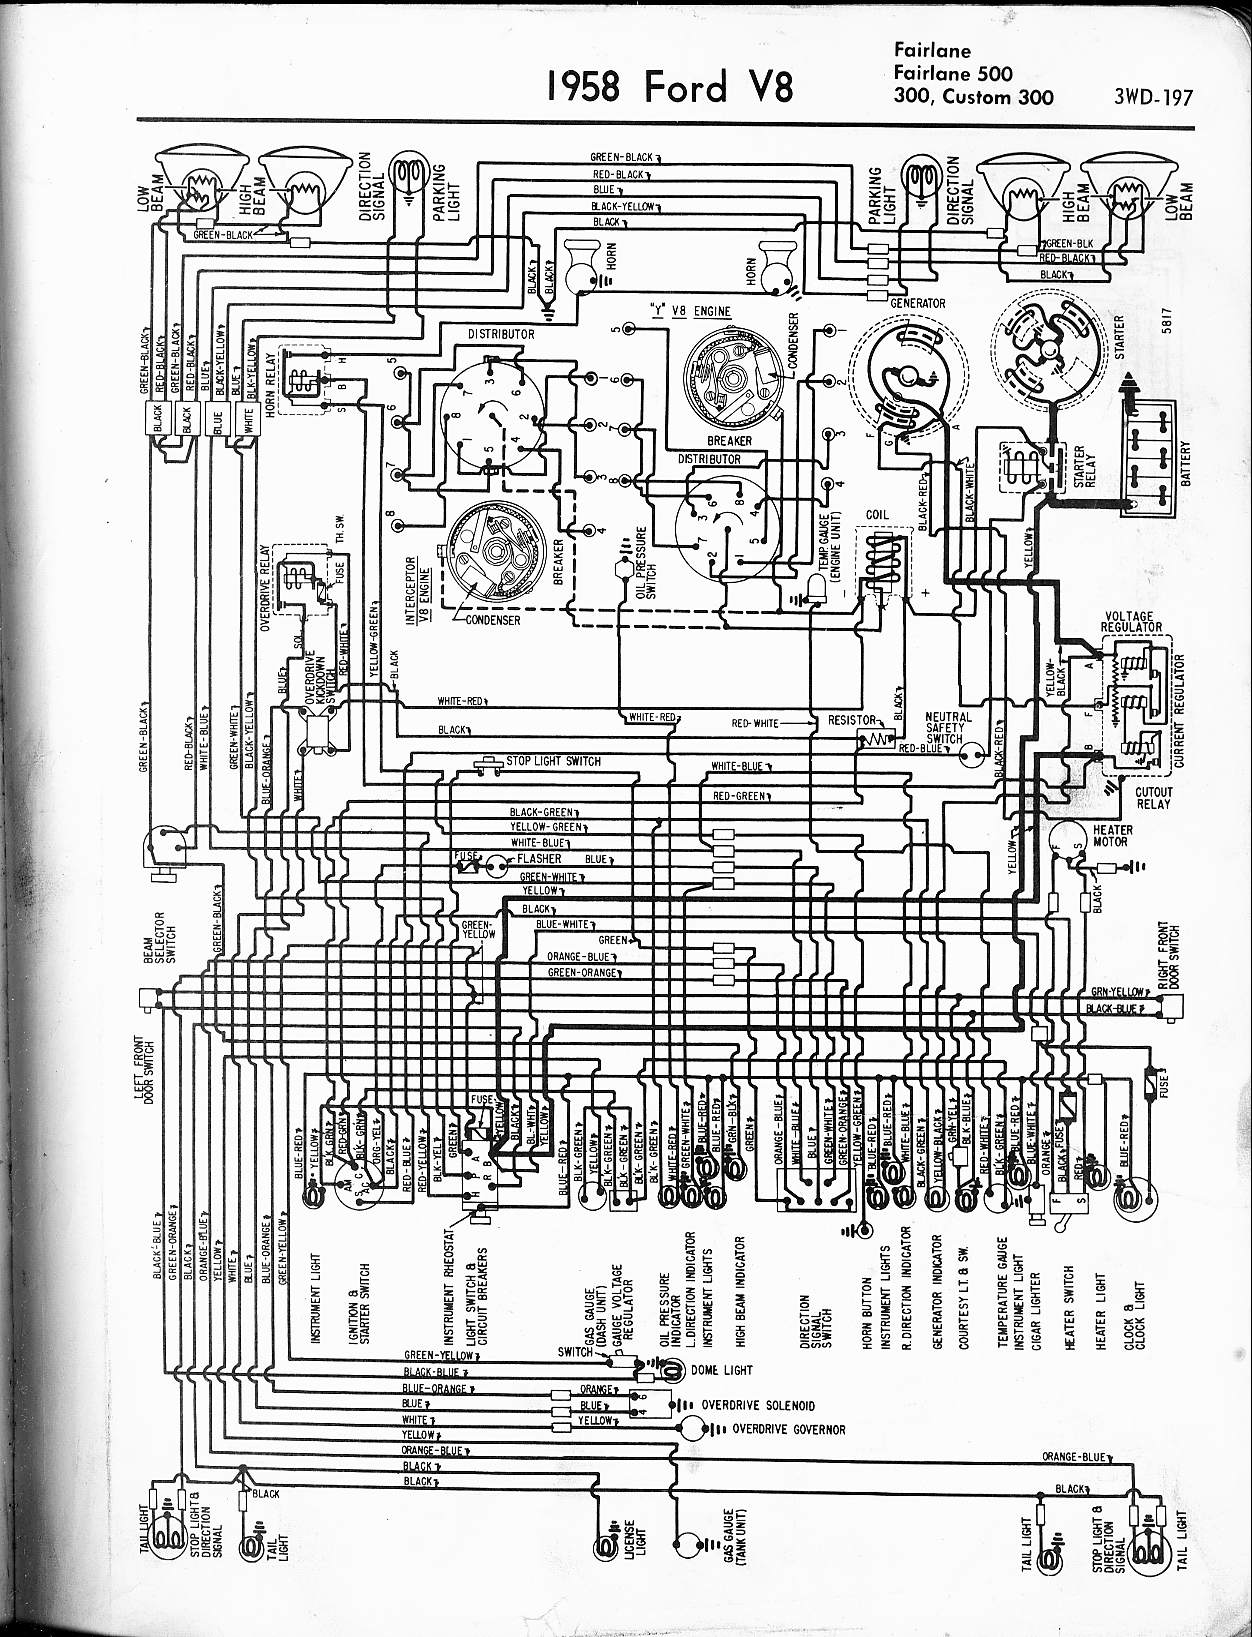 57 65 ford wiring diagrams ford hvac diagram 1958 v8 fairlane, 500, 300,